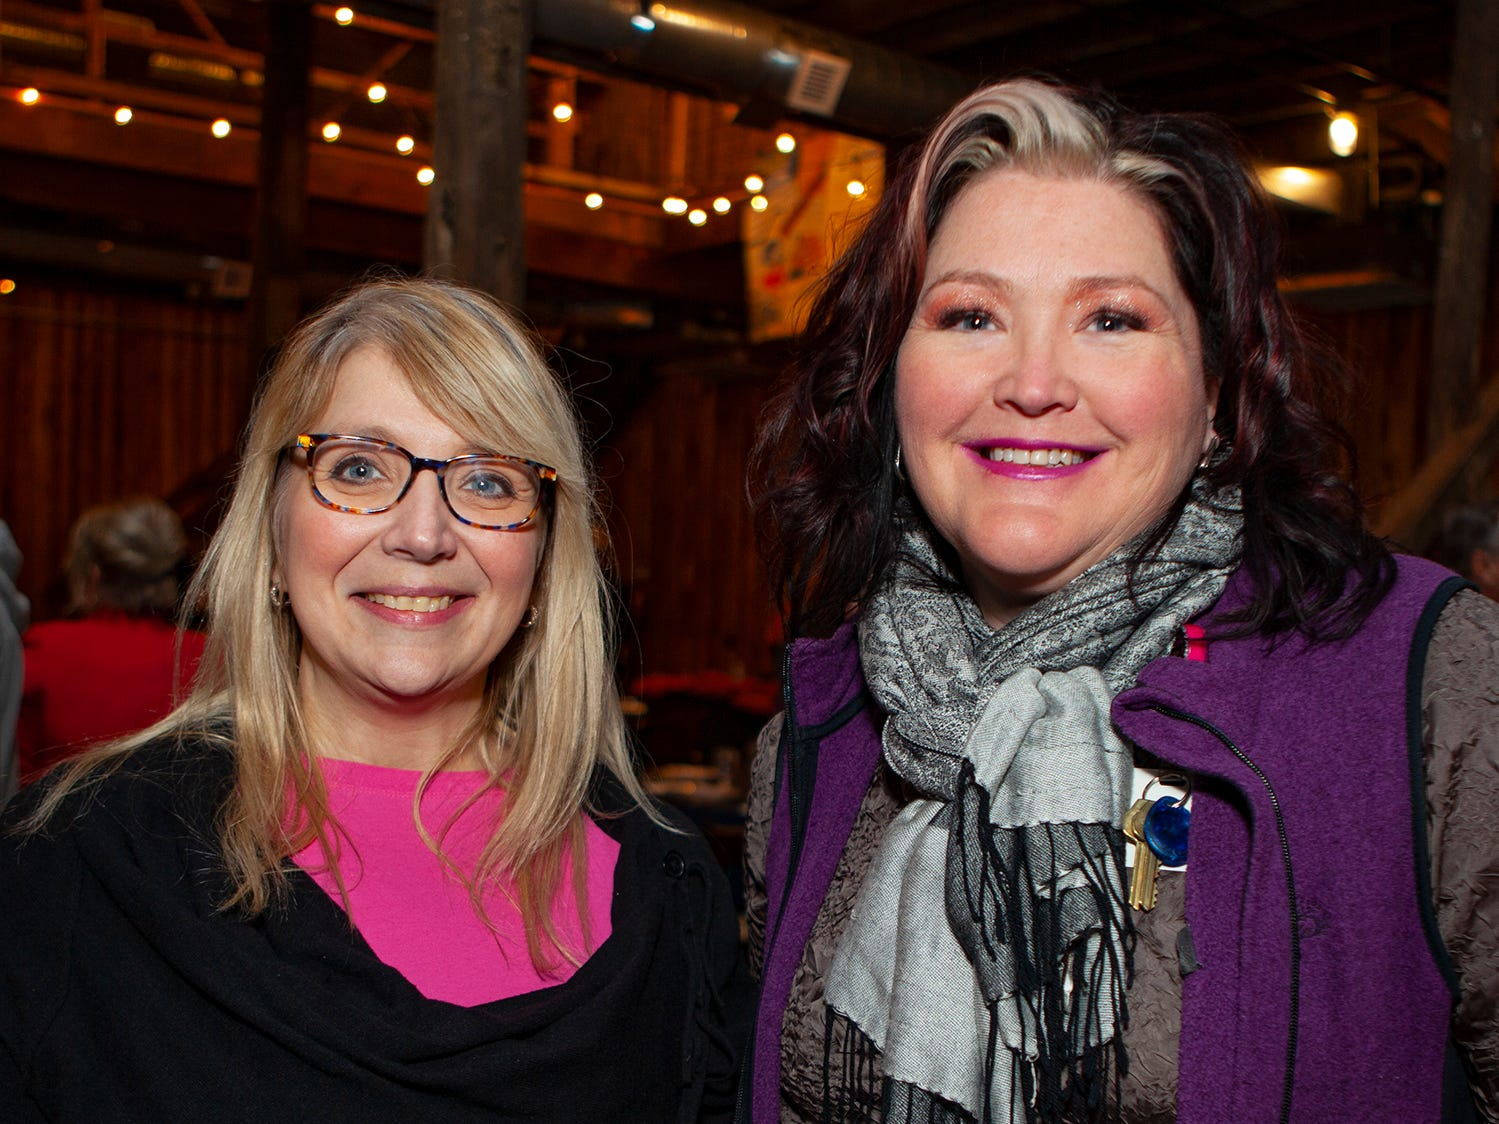 Leslie Baker and Jennifer Levi at the second night of Bluebird in the Boro, held March 4-6, 2019. A benefit for Alive Hospice, the event was held at The Grove at Williamson Place in Murfreesboro.